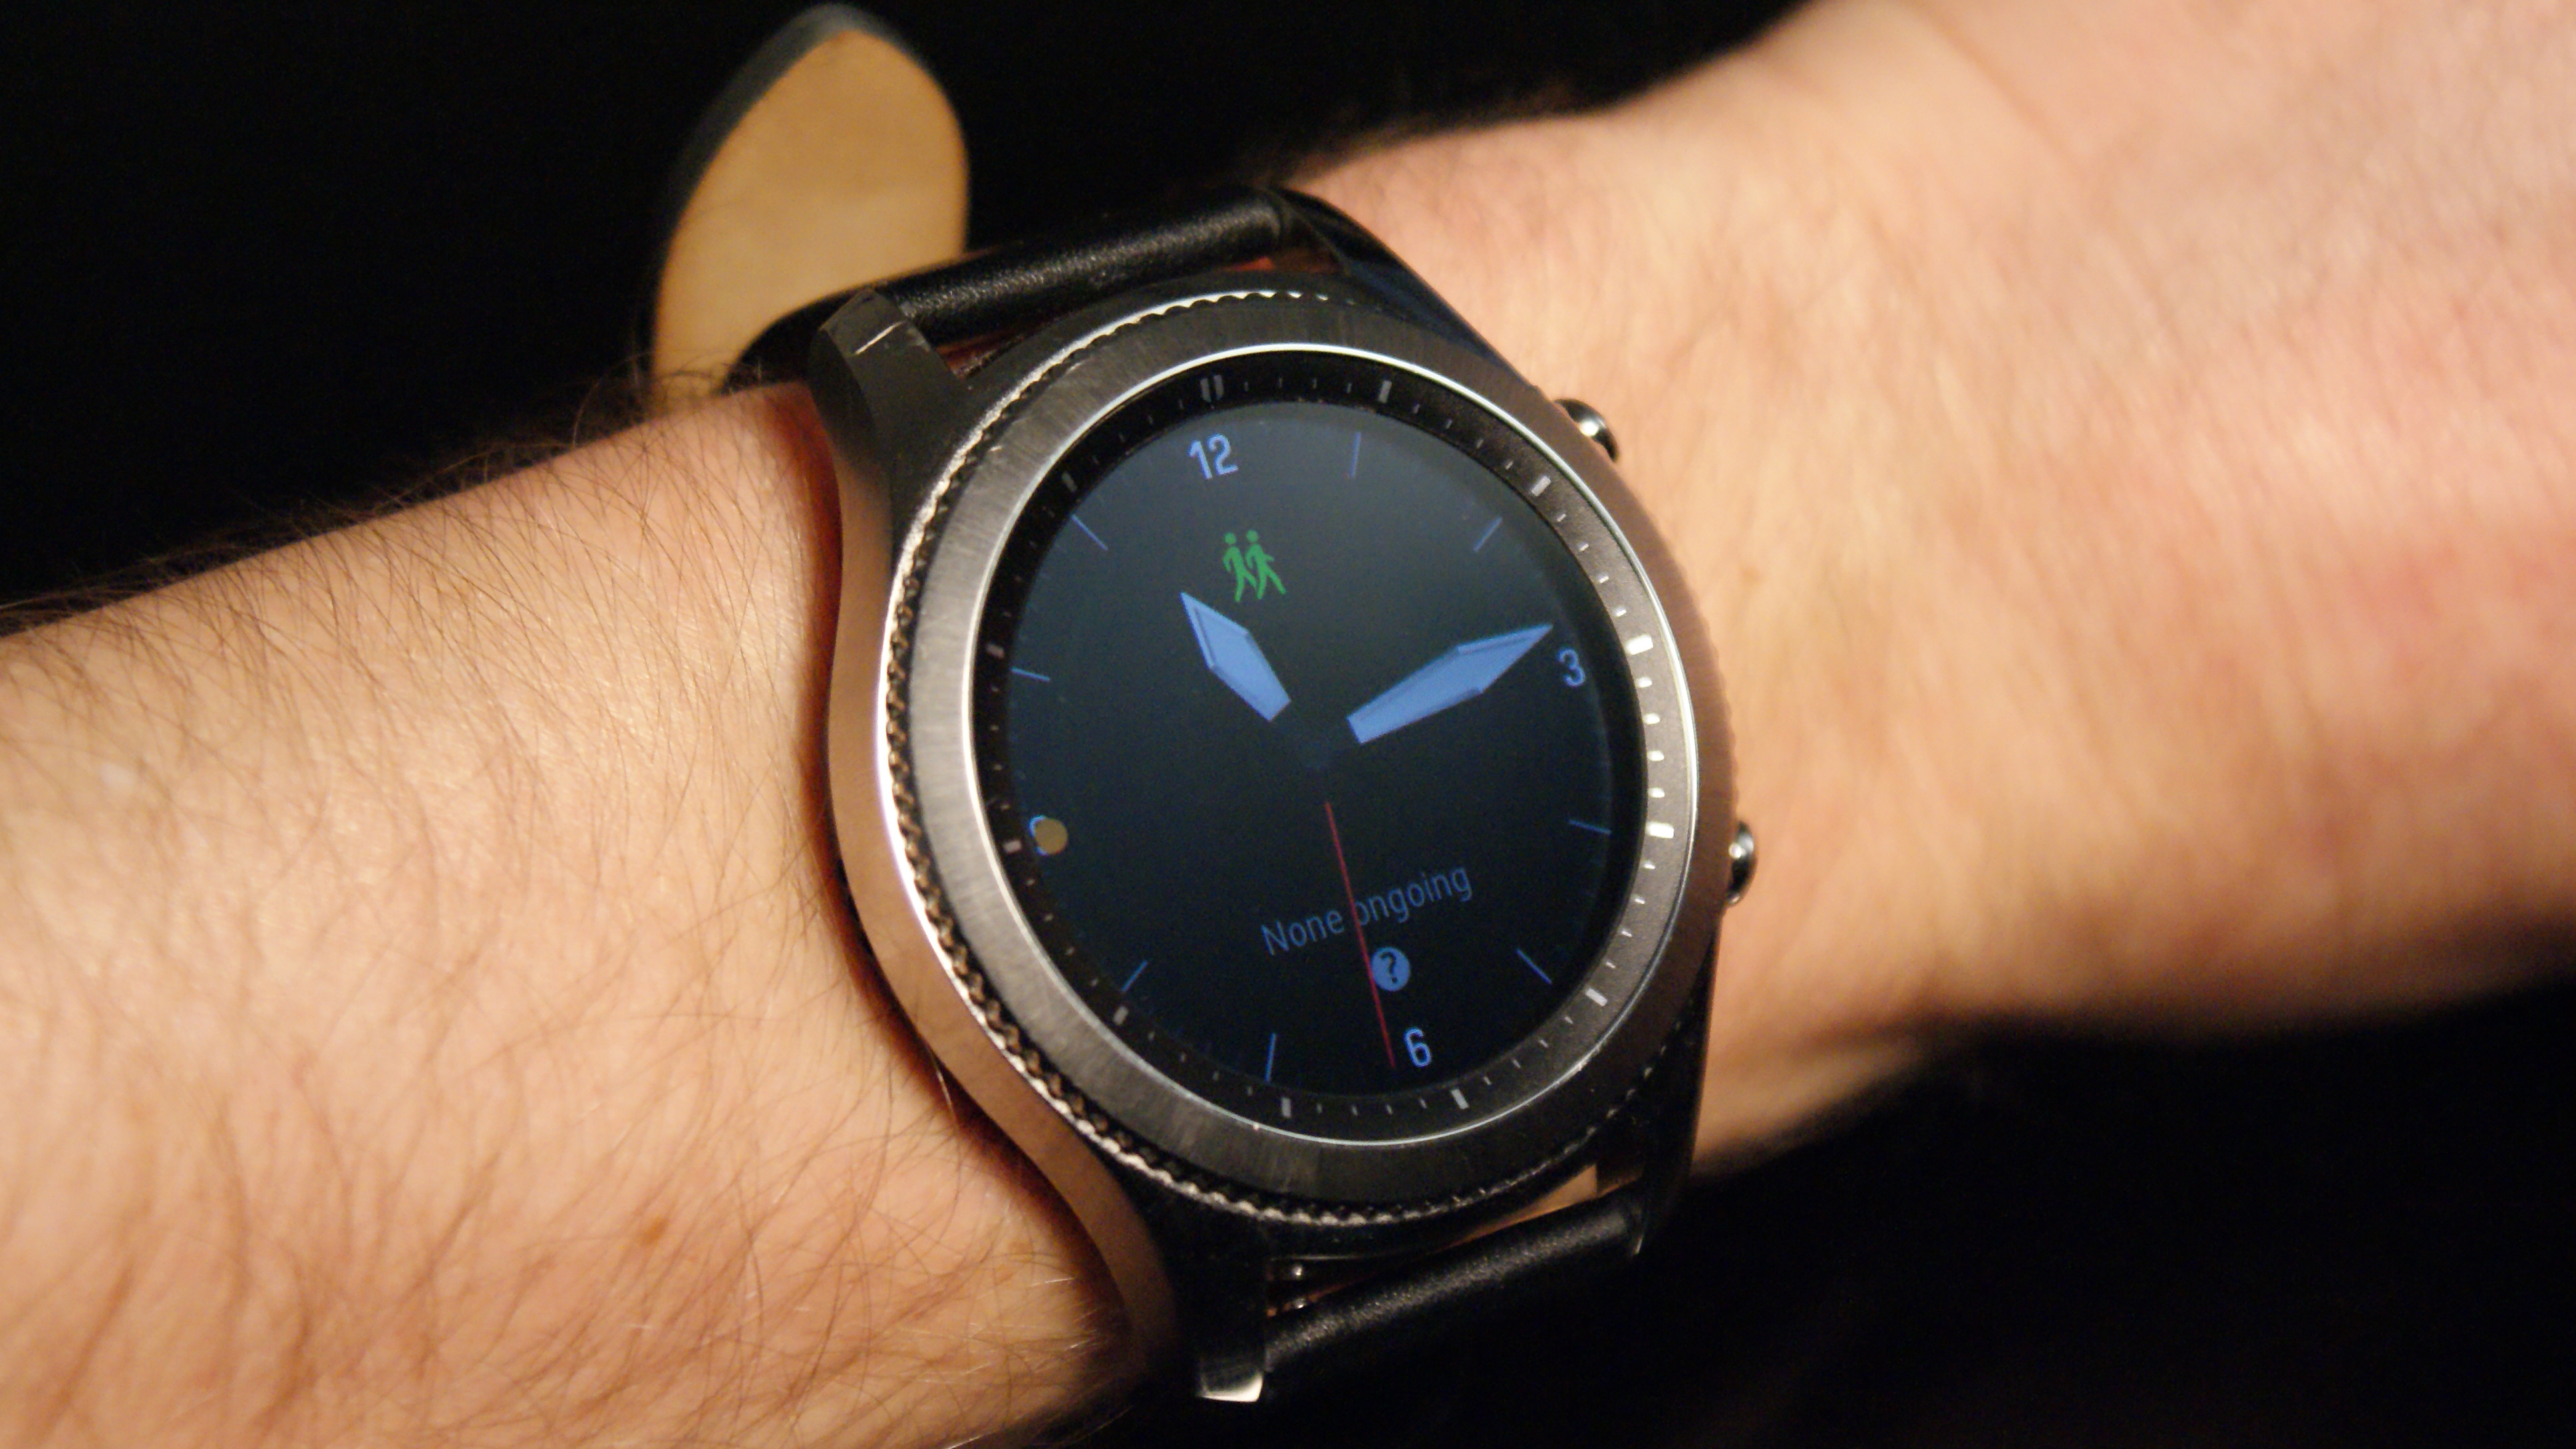 cfbe879be Despite a lack of original apps, the Samsung Gear S3 is one of the best  smartwatch options on the market and it works with iOS and Android.